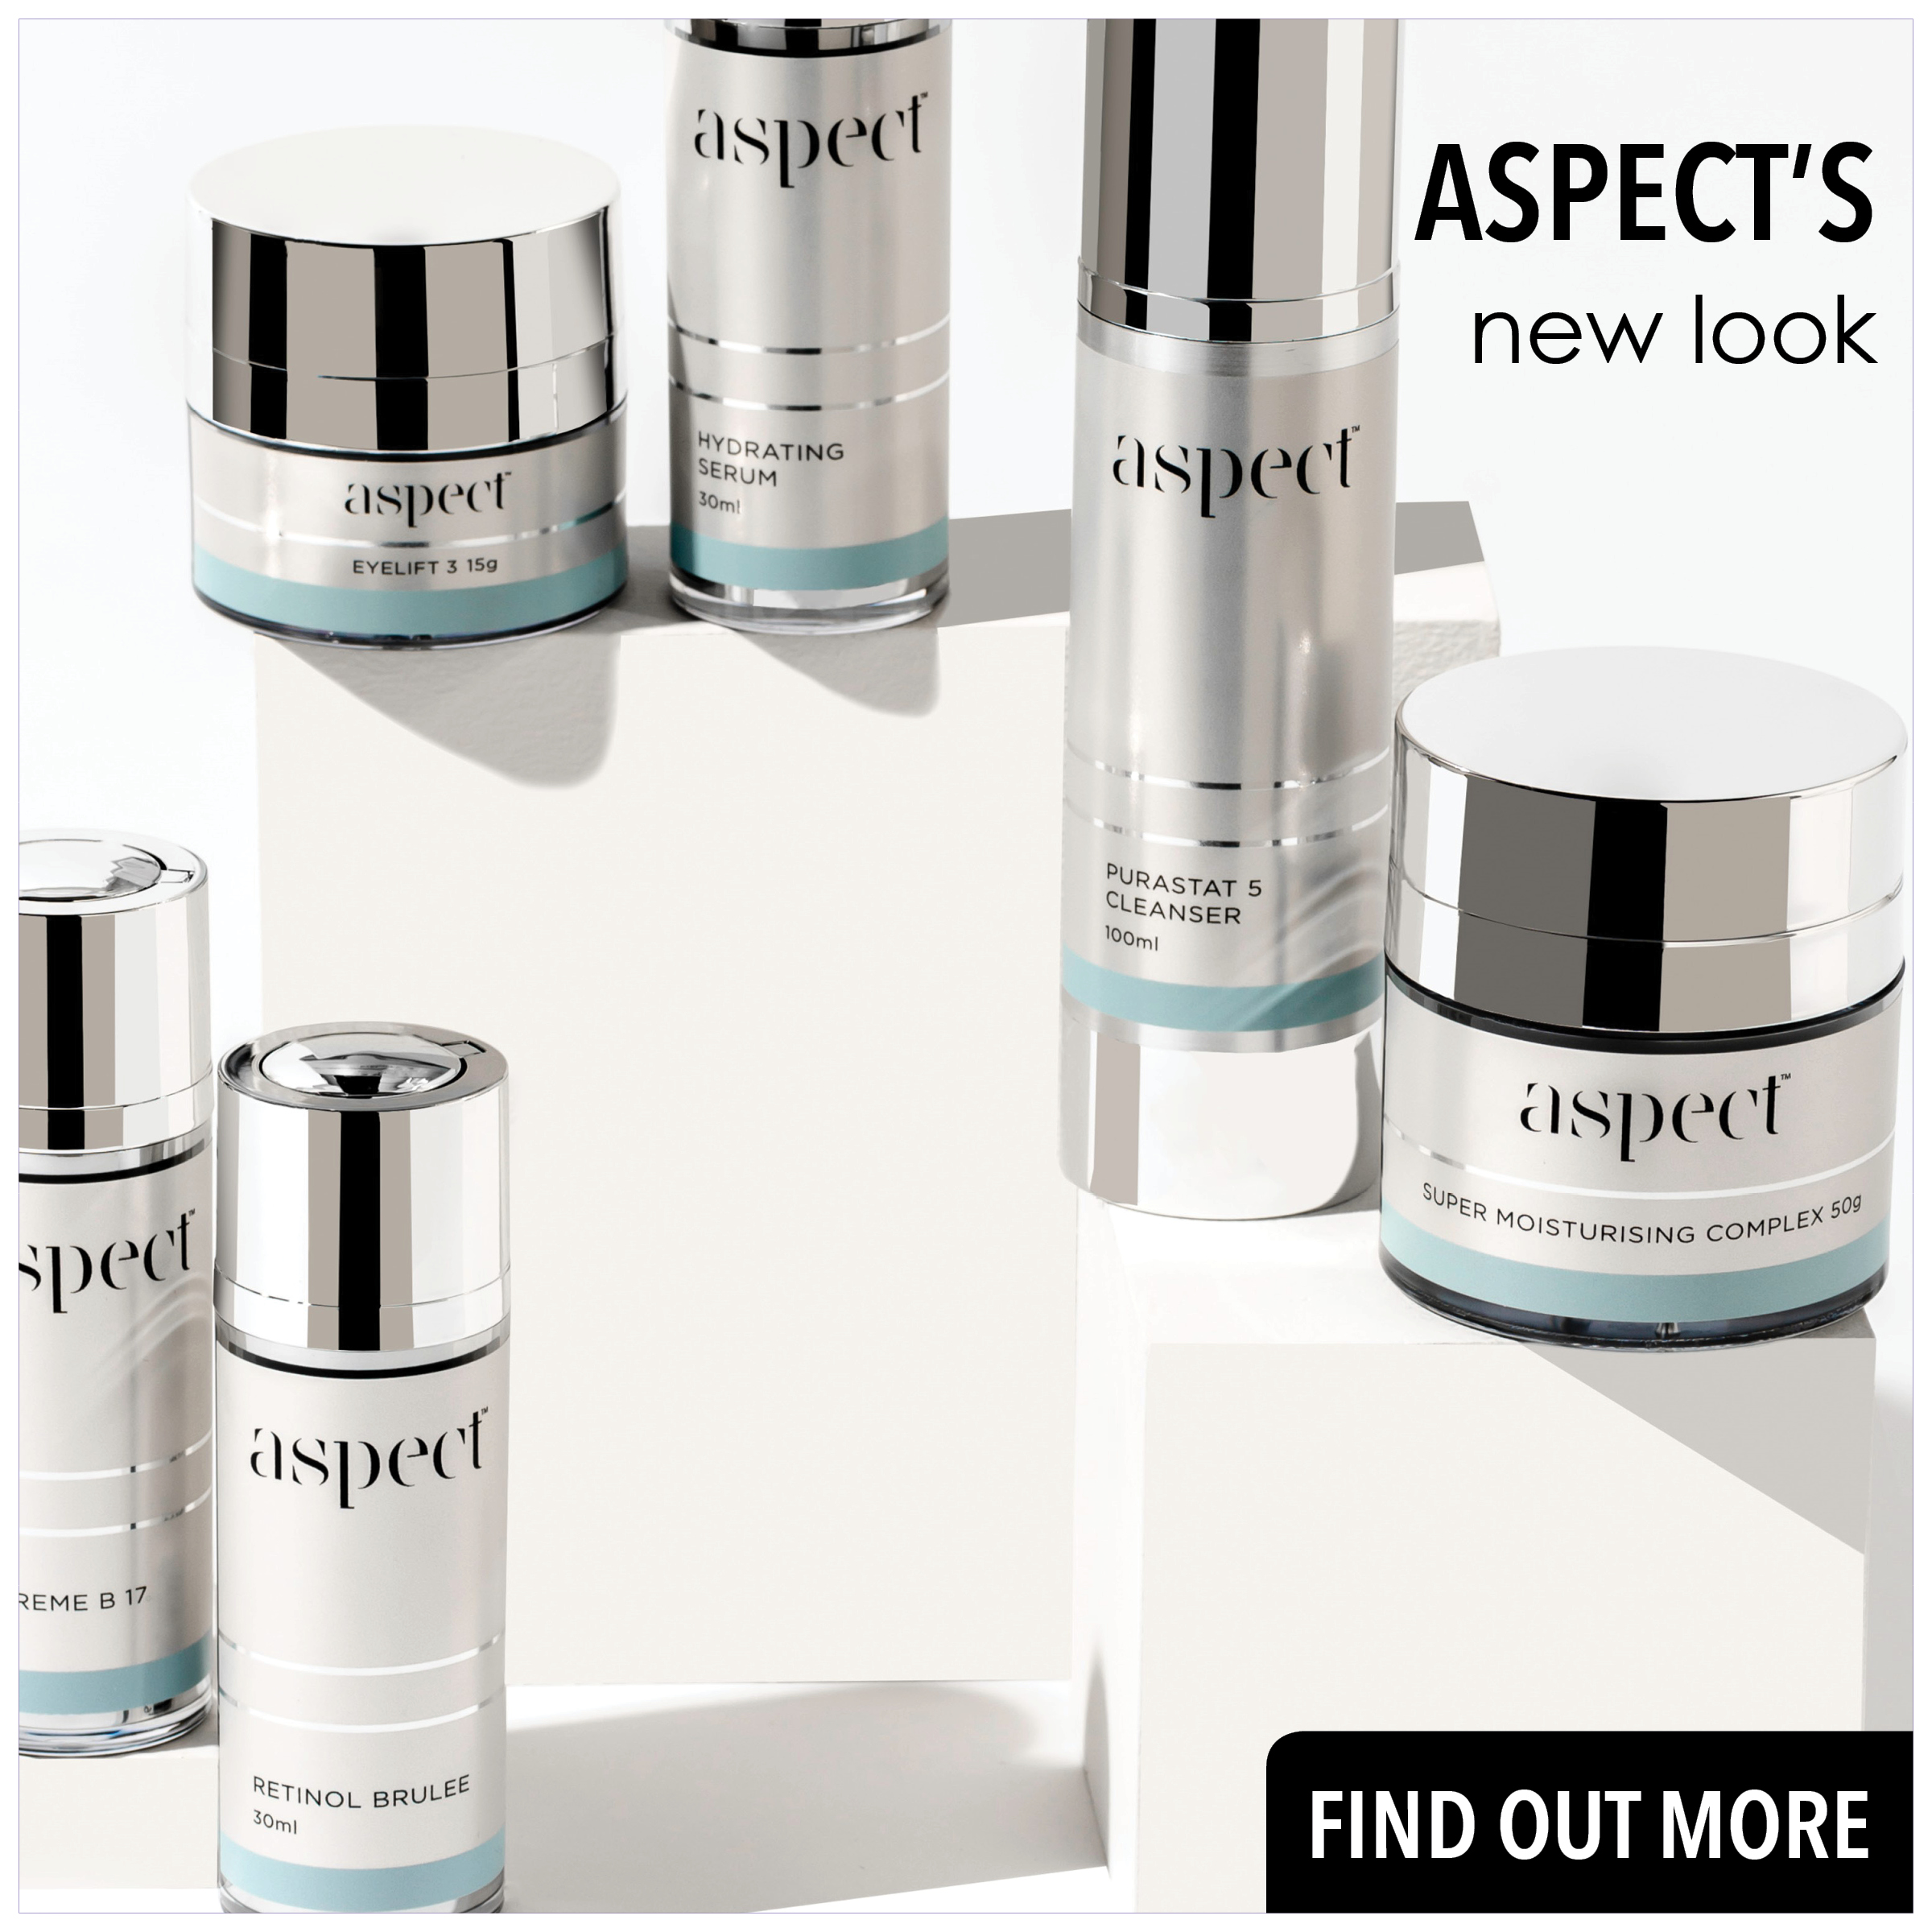 Aspect skincare brand refresh and new look and feel in NZ